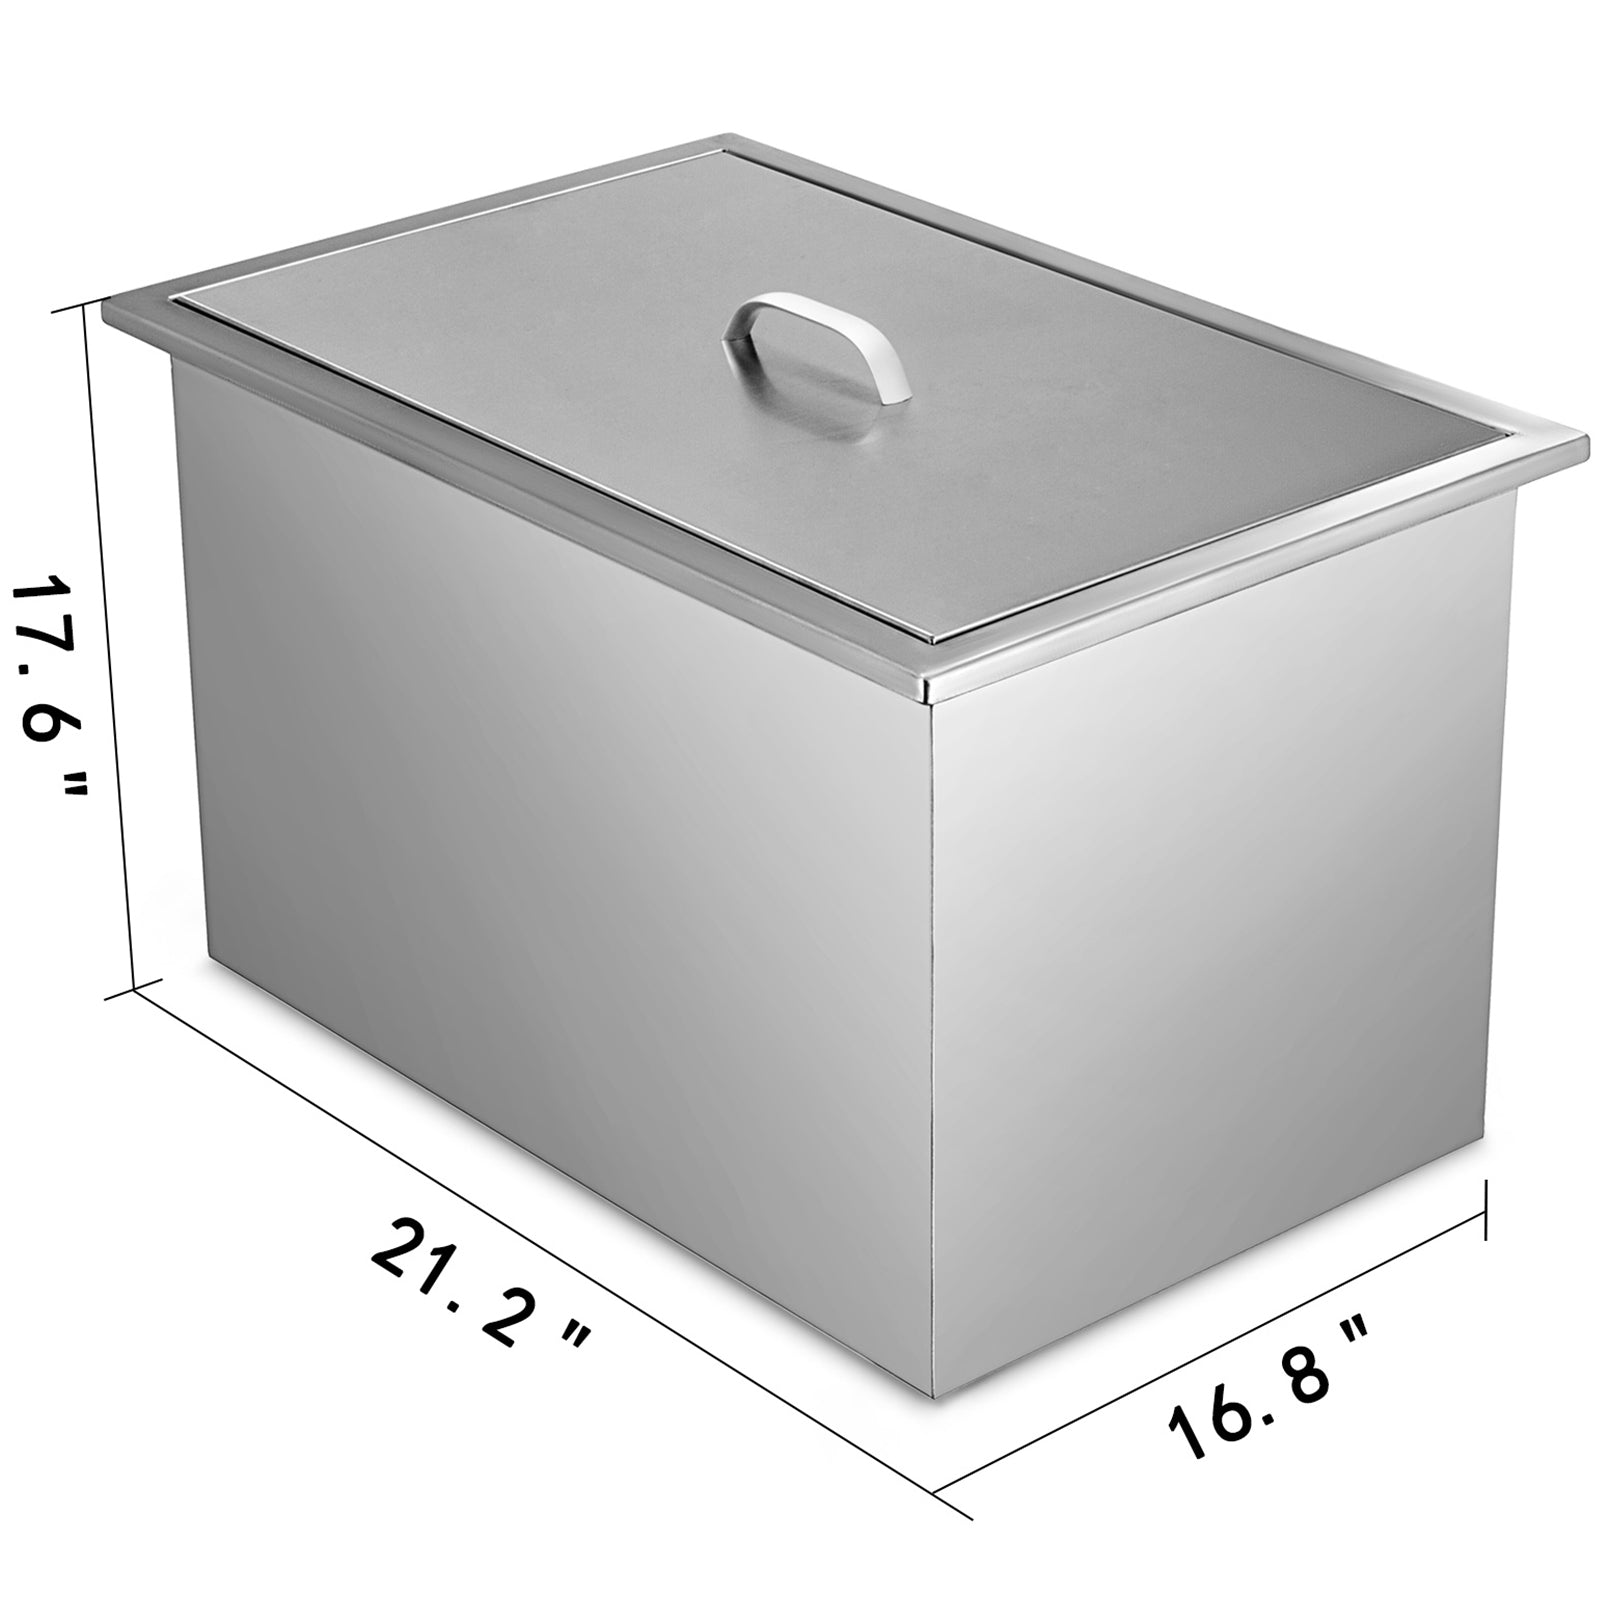 53*44 Cm Drop In Ice Chest Bin With Cover Beer Beverage Stainless Steel Cooler